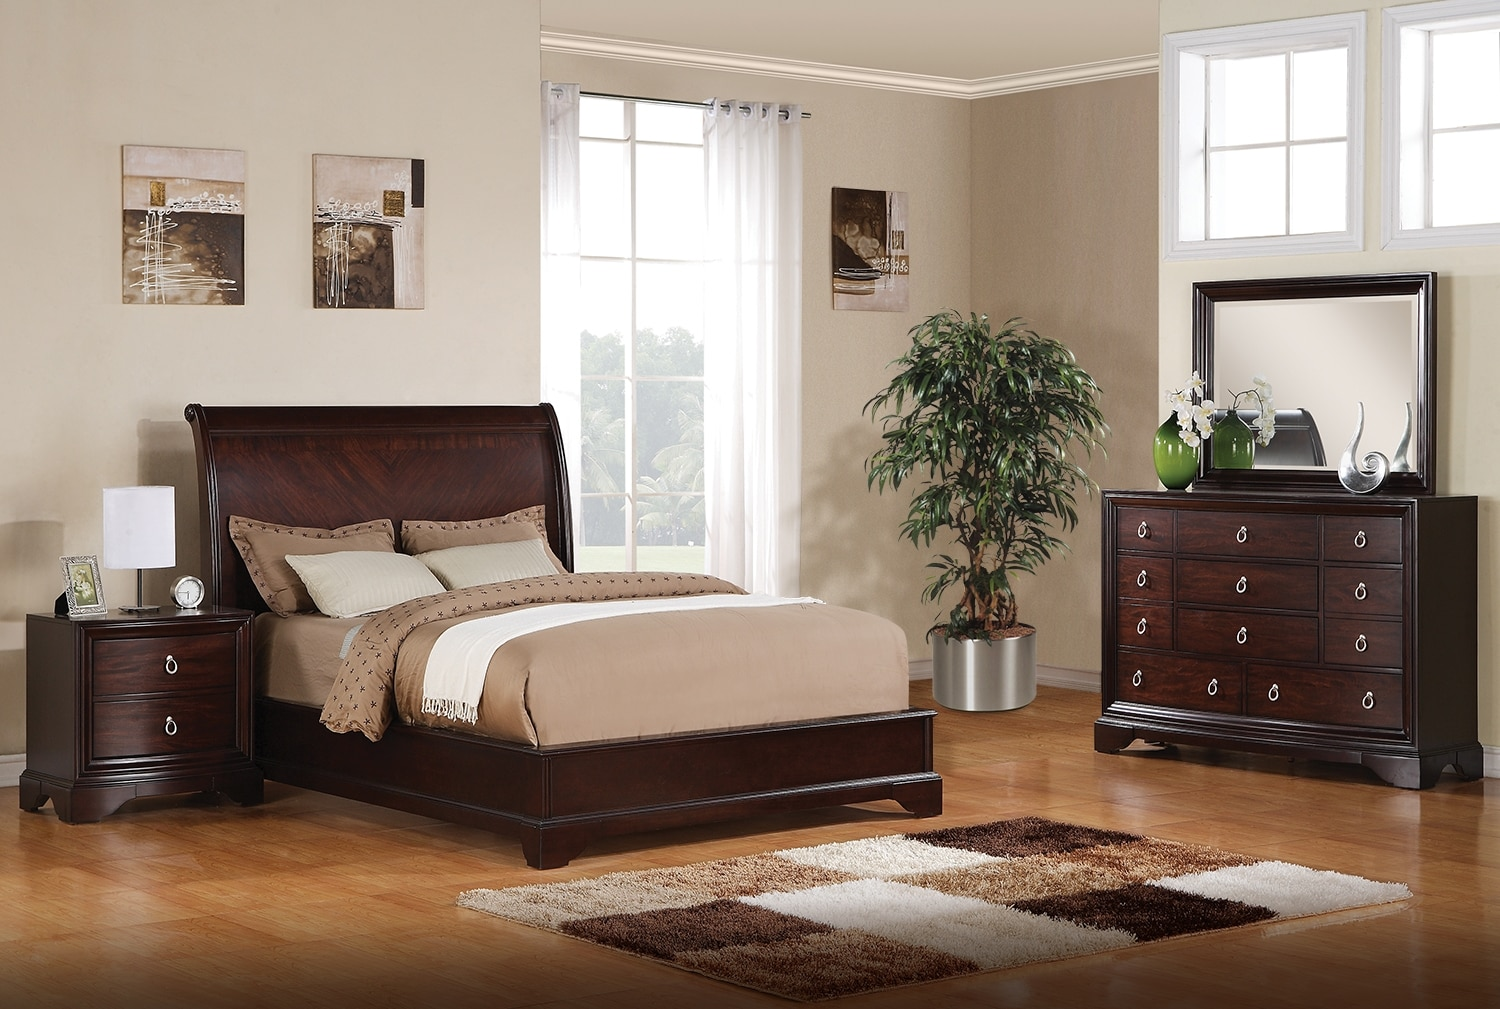 Noah 5-Piece Queen Bedroom Set - Dark Cherry